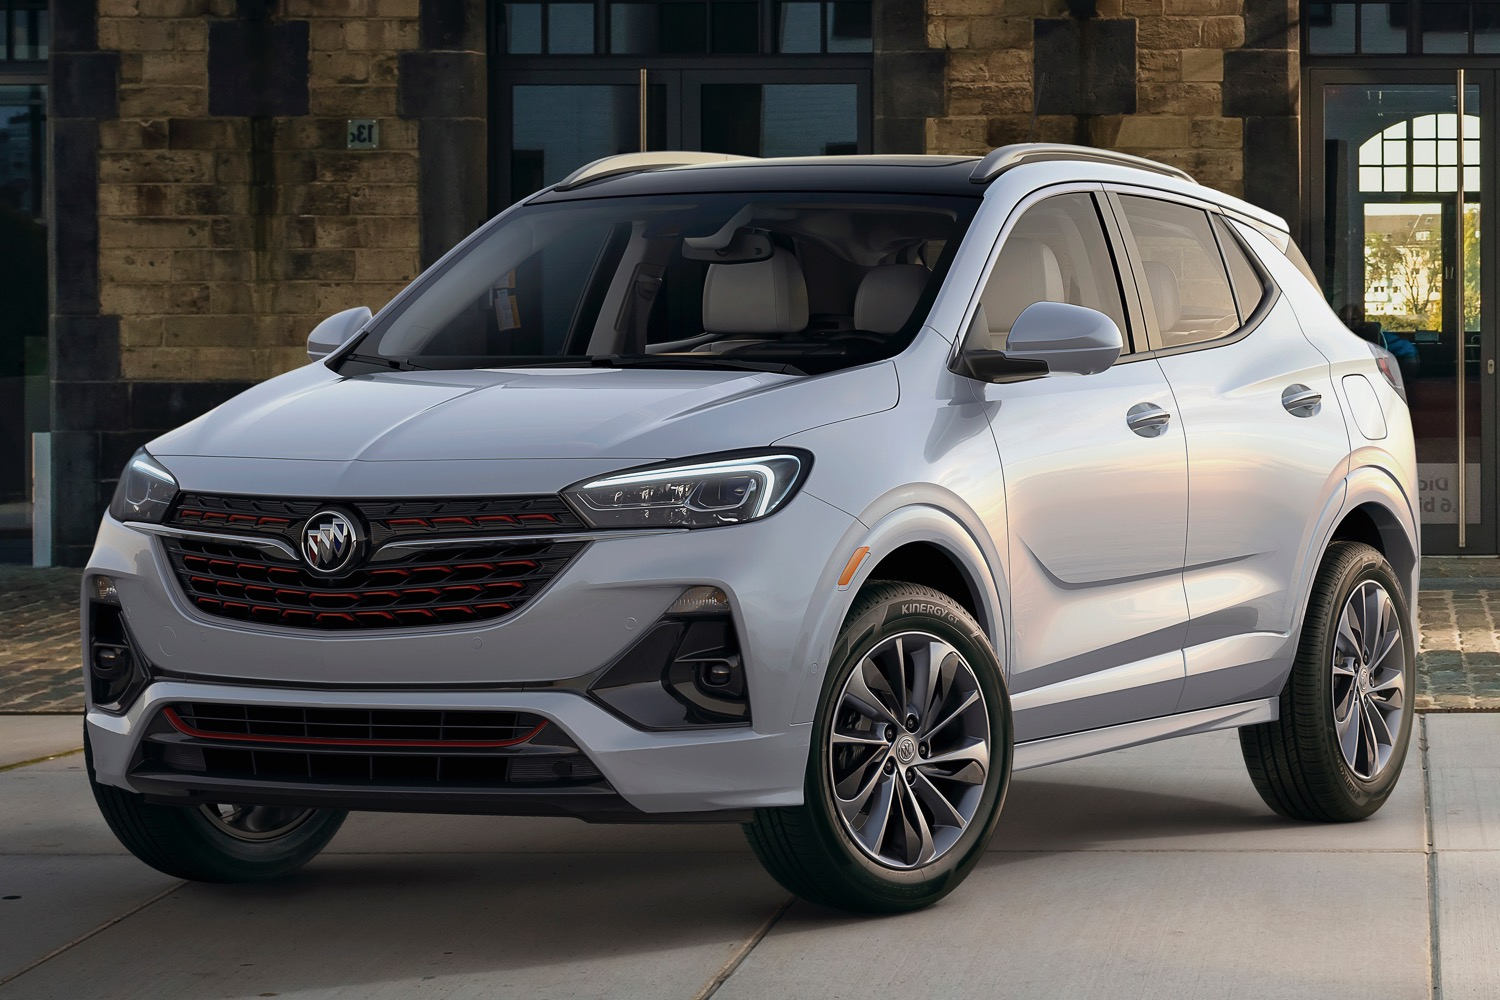 Buick Encore Gx: Check Out The Four Sets Of Factory Wheels New 2022 Buick Encore Accessories, All Wheel Drive, Build